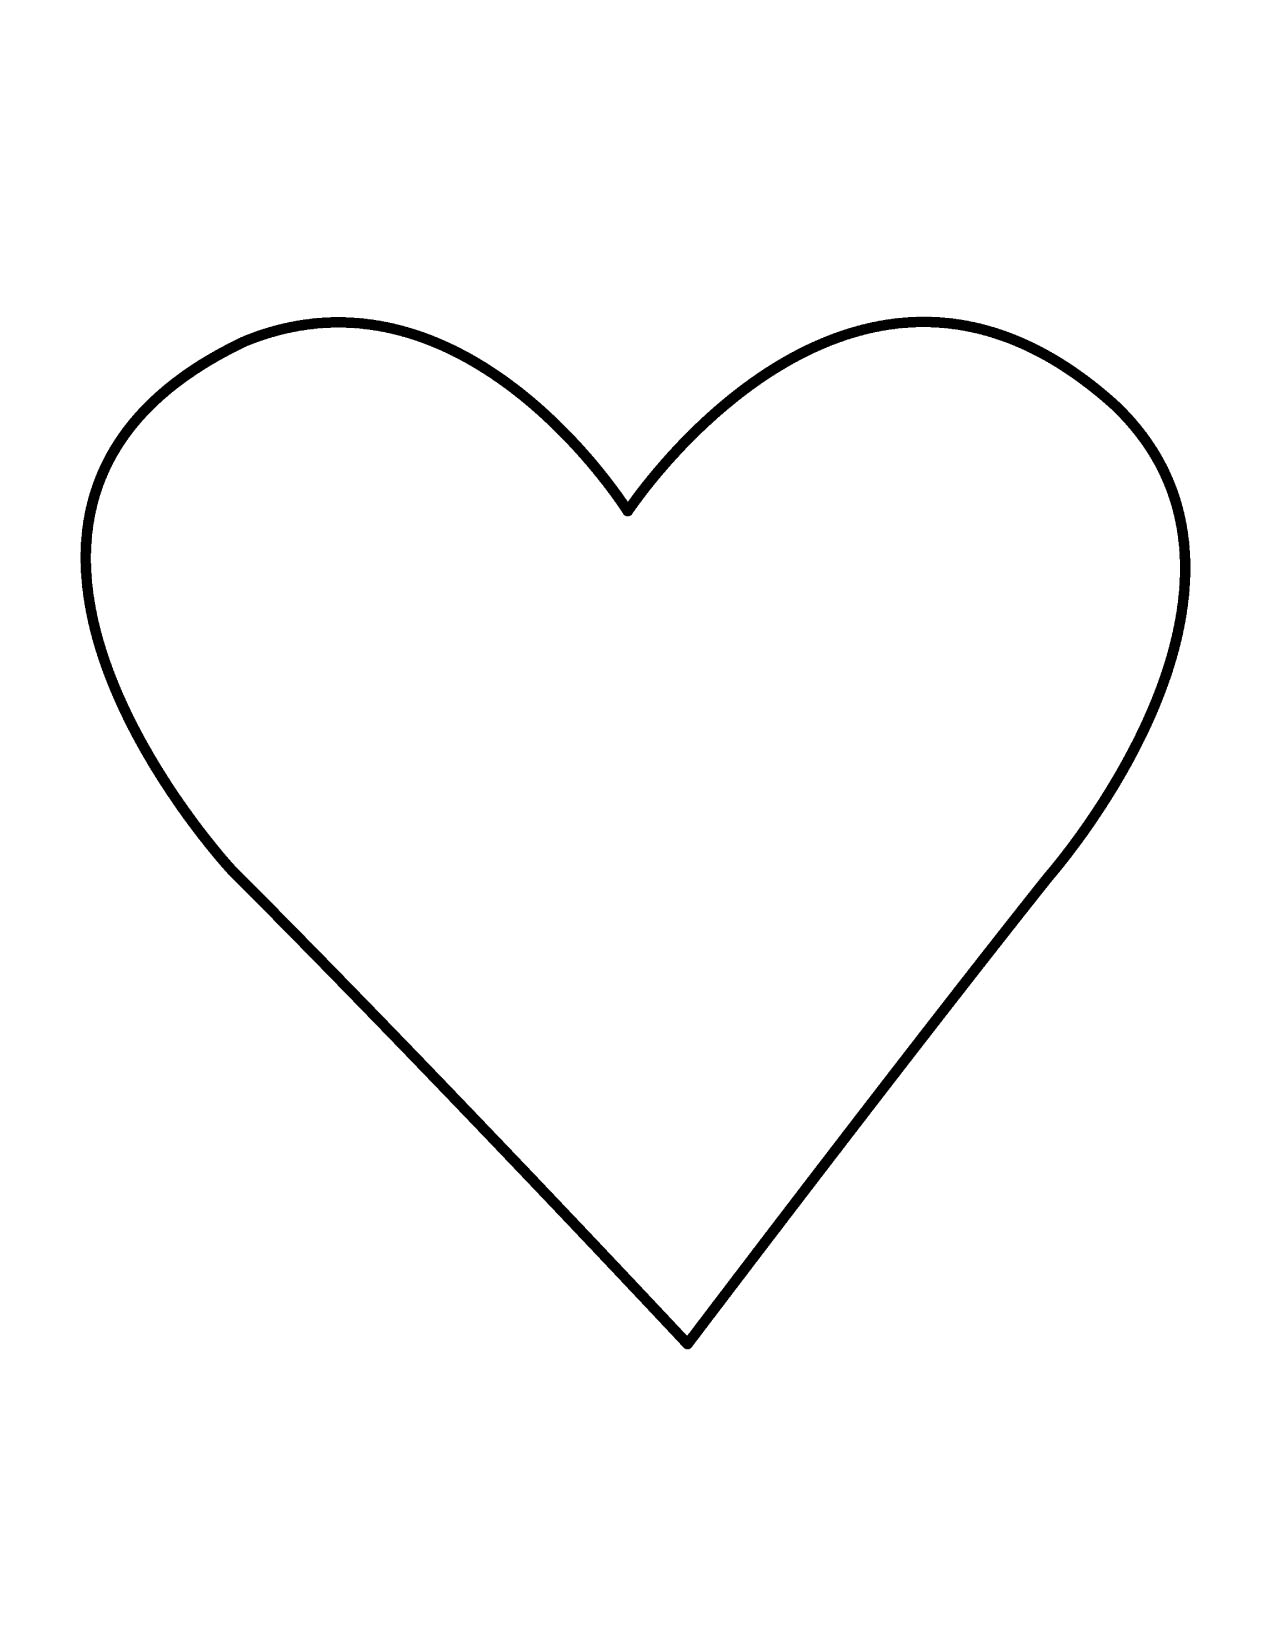 Heart-shaped clipart large heart #5